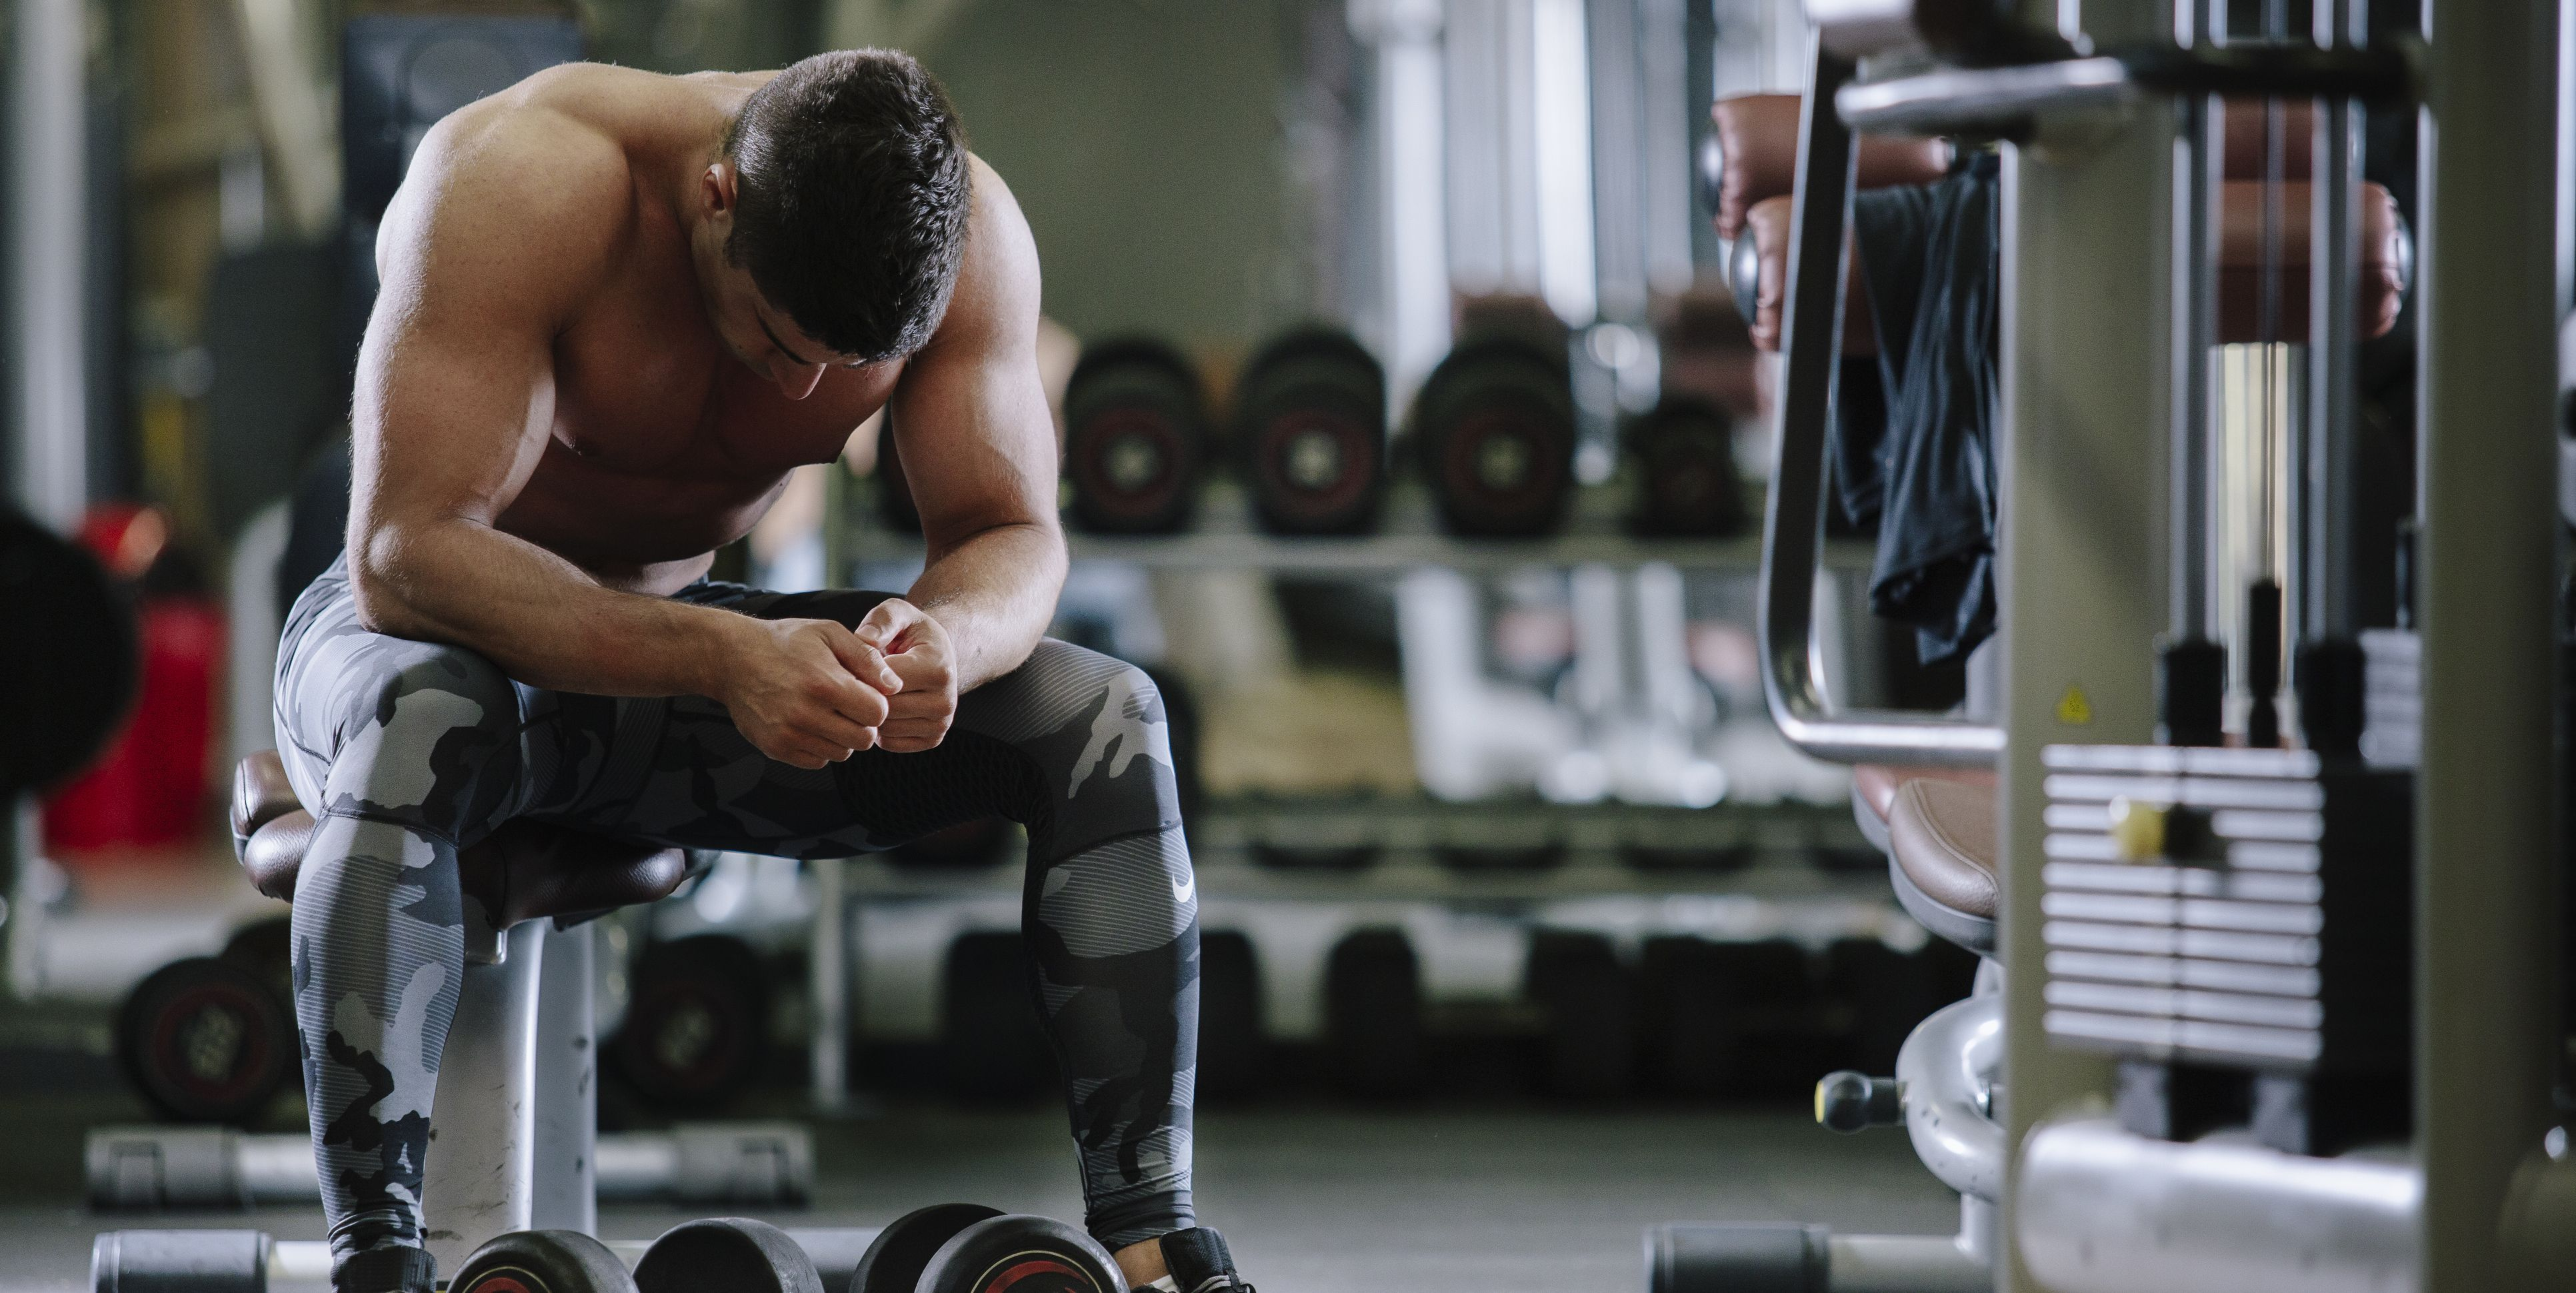 Muscular Fit Man Exercising in a Gym